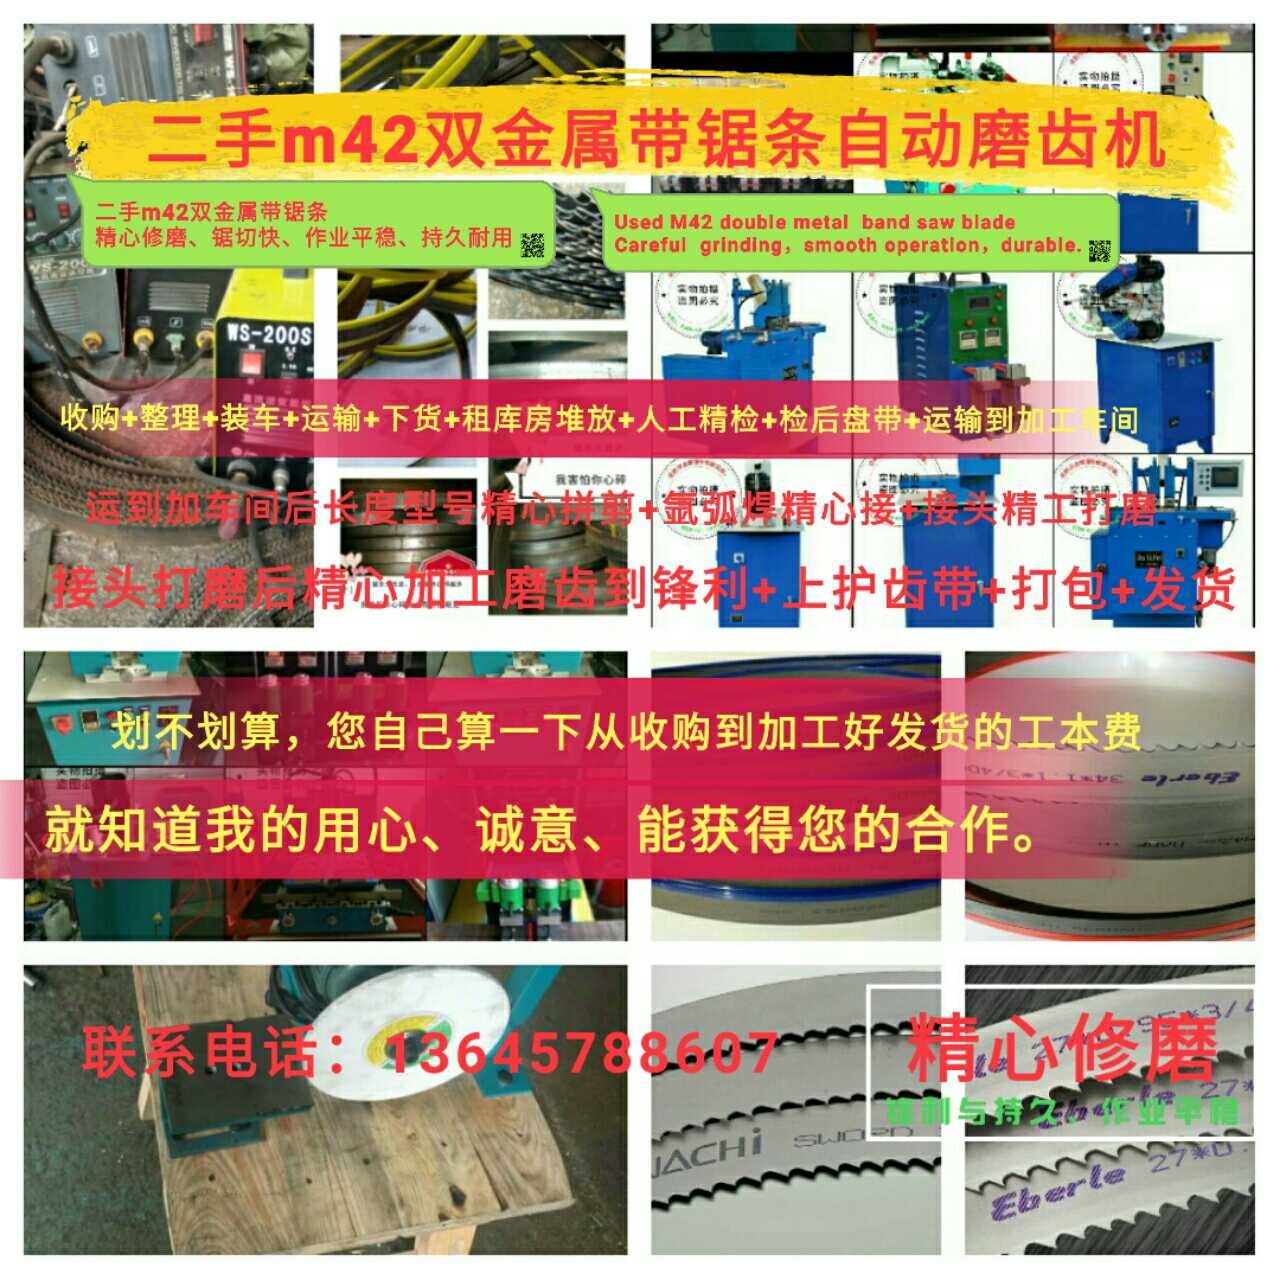 Used band saw machine machining with saw blade, do not try, do not know a jump